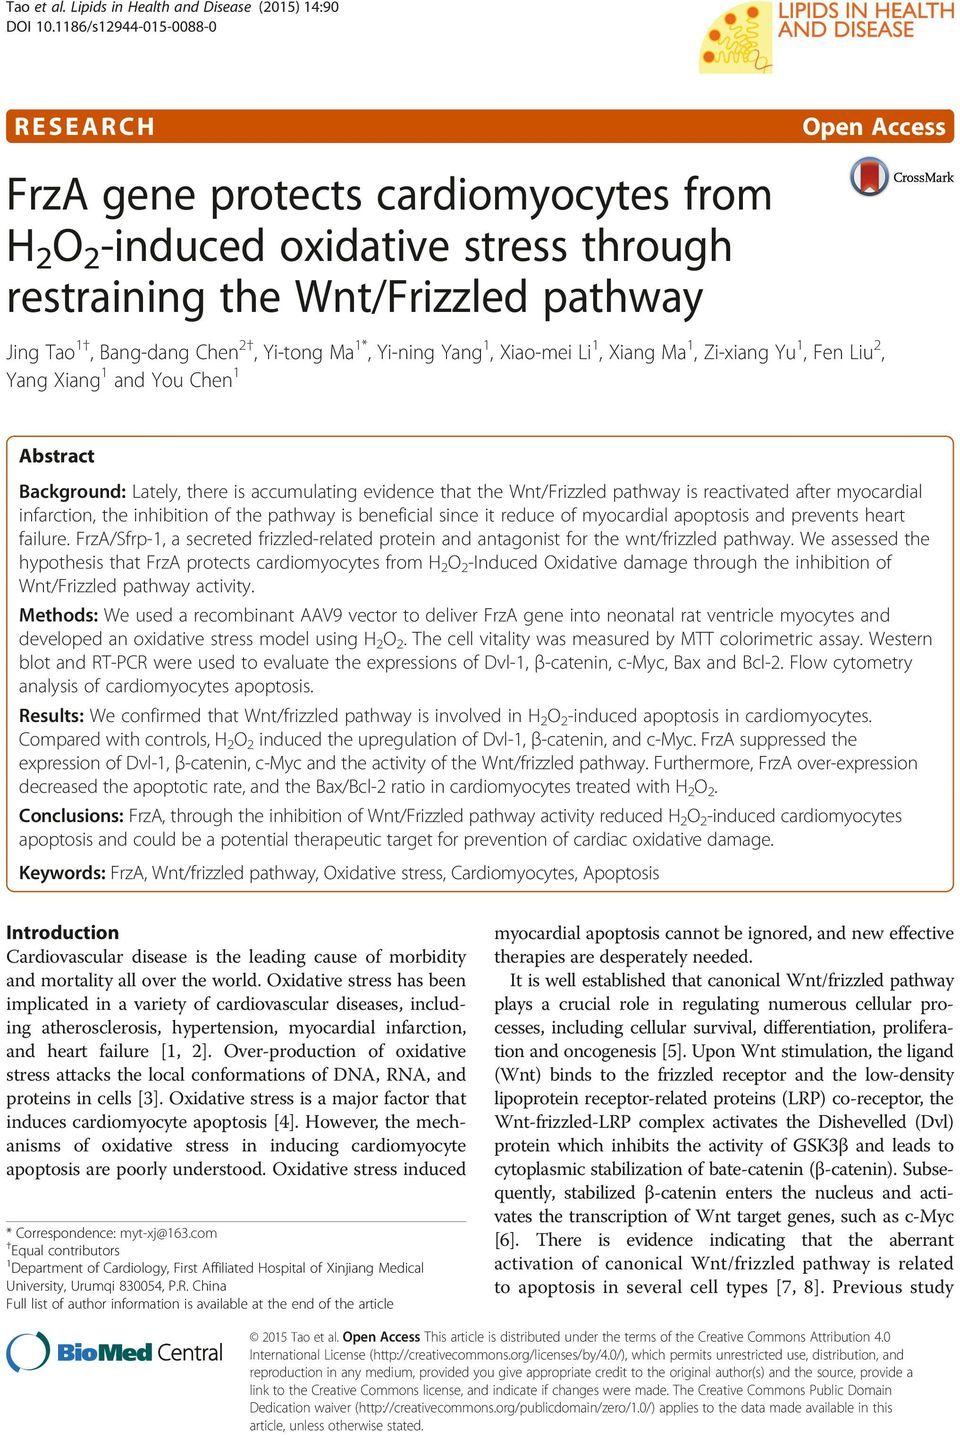 Ma 1*, Yi-ning Yang 1, Xiao-mei Li 1, Xiang Ma 1, Zi-xiang Yu 1, Fen Liu 2, Yang Xiang 1 and You Chen 1 Abstract Background: Lately, there is accumulating evidence that the Wnt/Frizzled pathway is